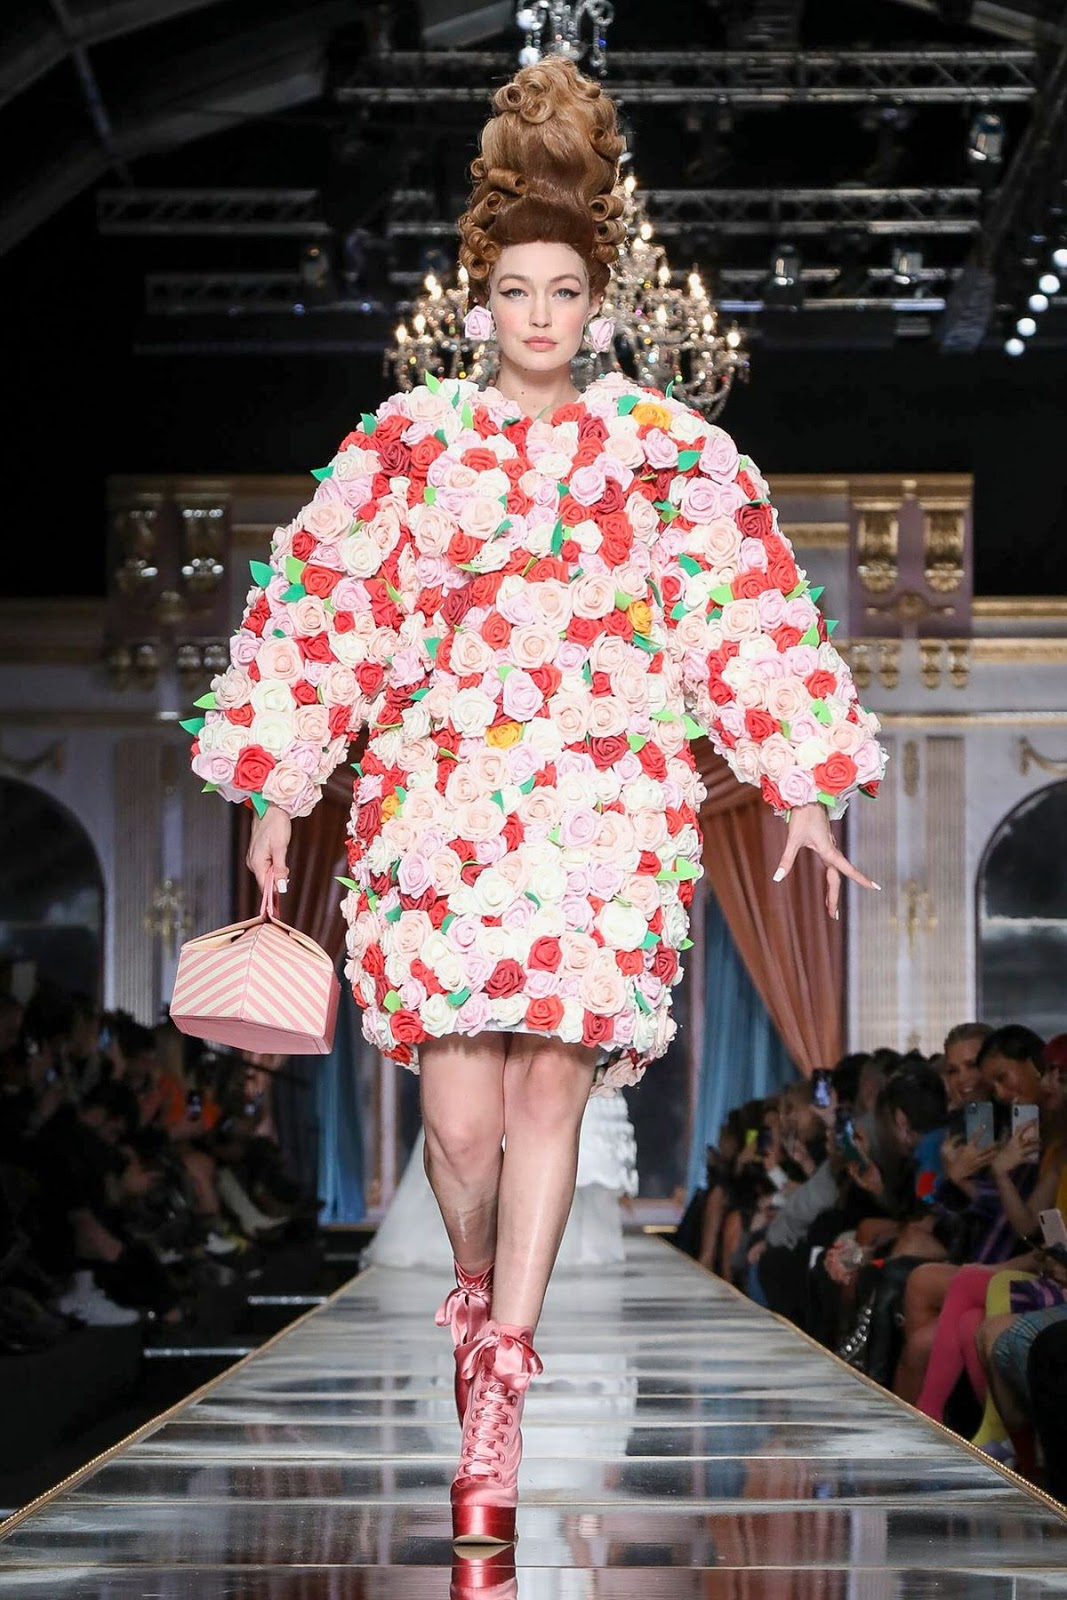 Gigi Hadid rules the runway in a rose dress for Moschino's MFW Show